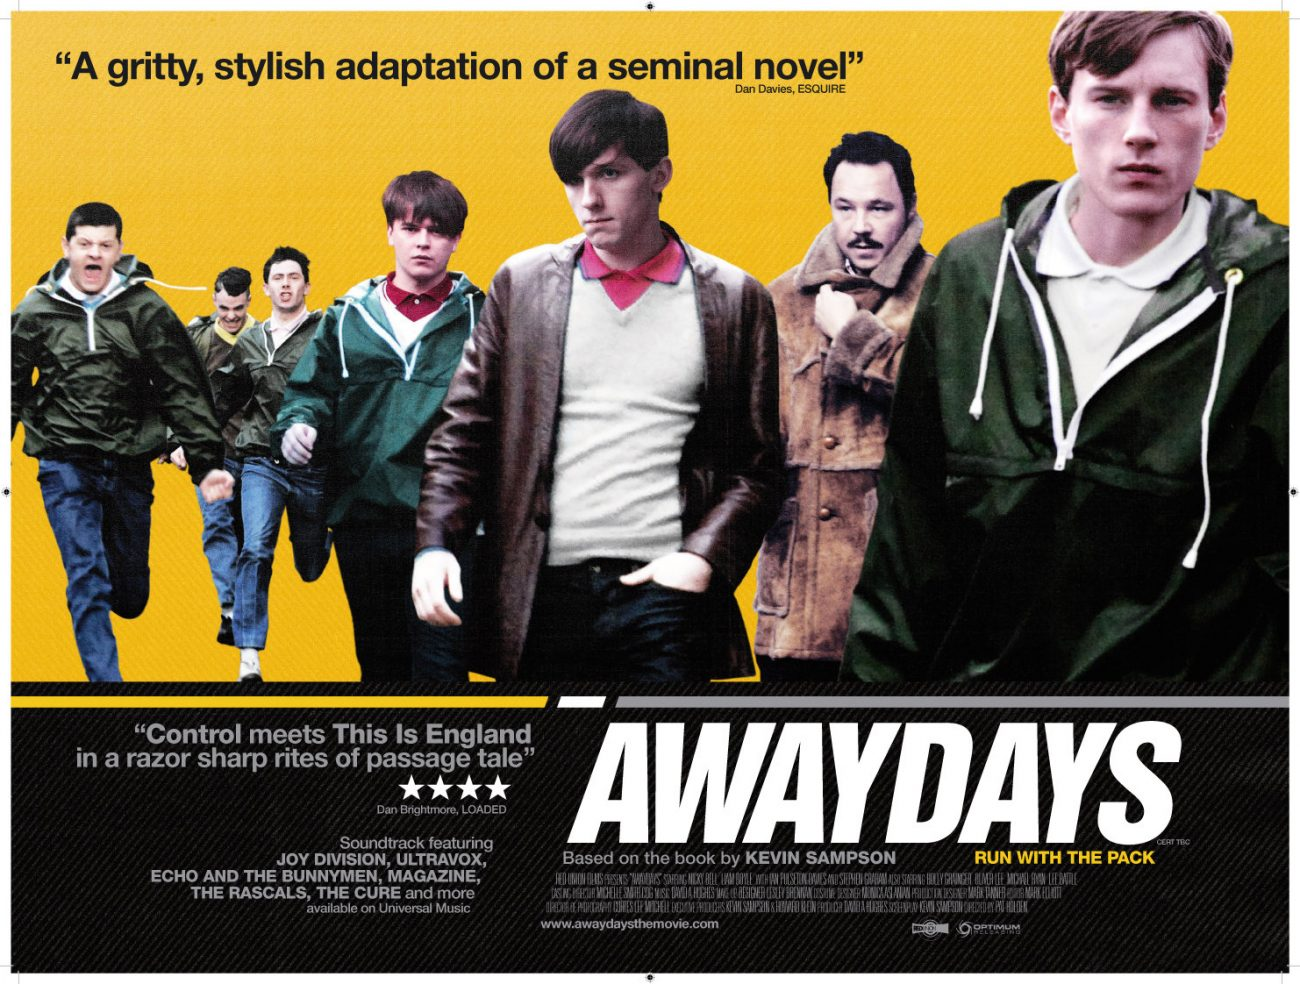 awaydays 1300x984 - Retro Movie of the Month: AWAYDAYS (2009)